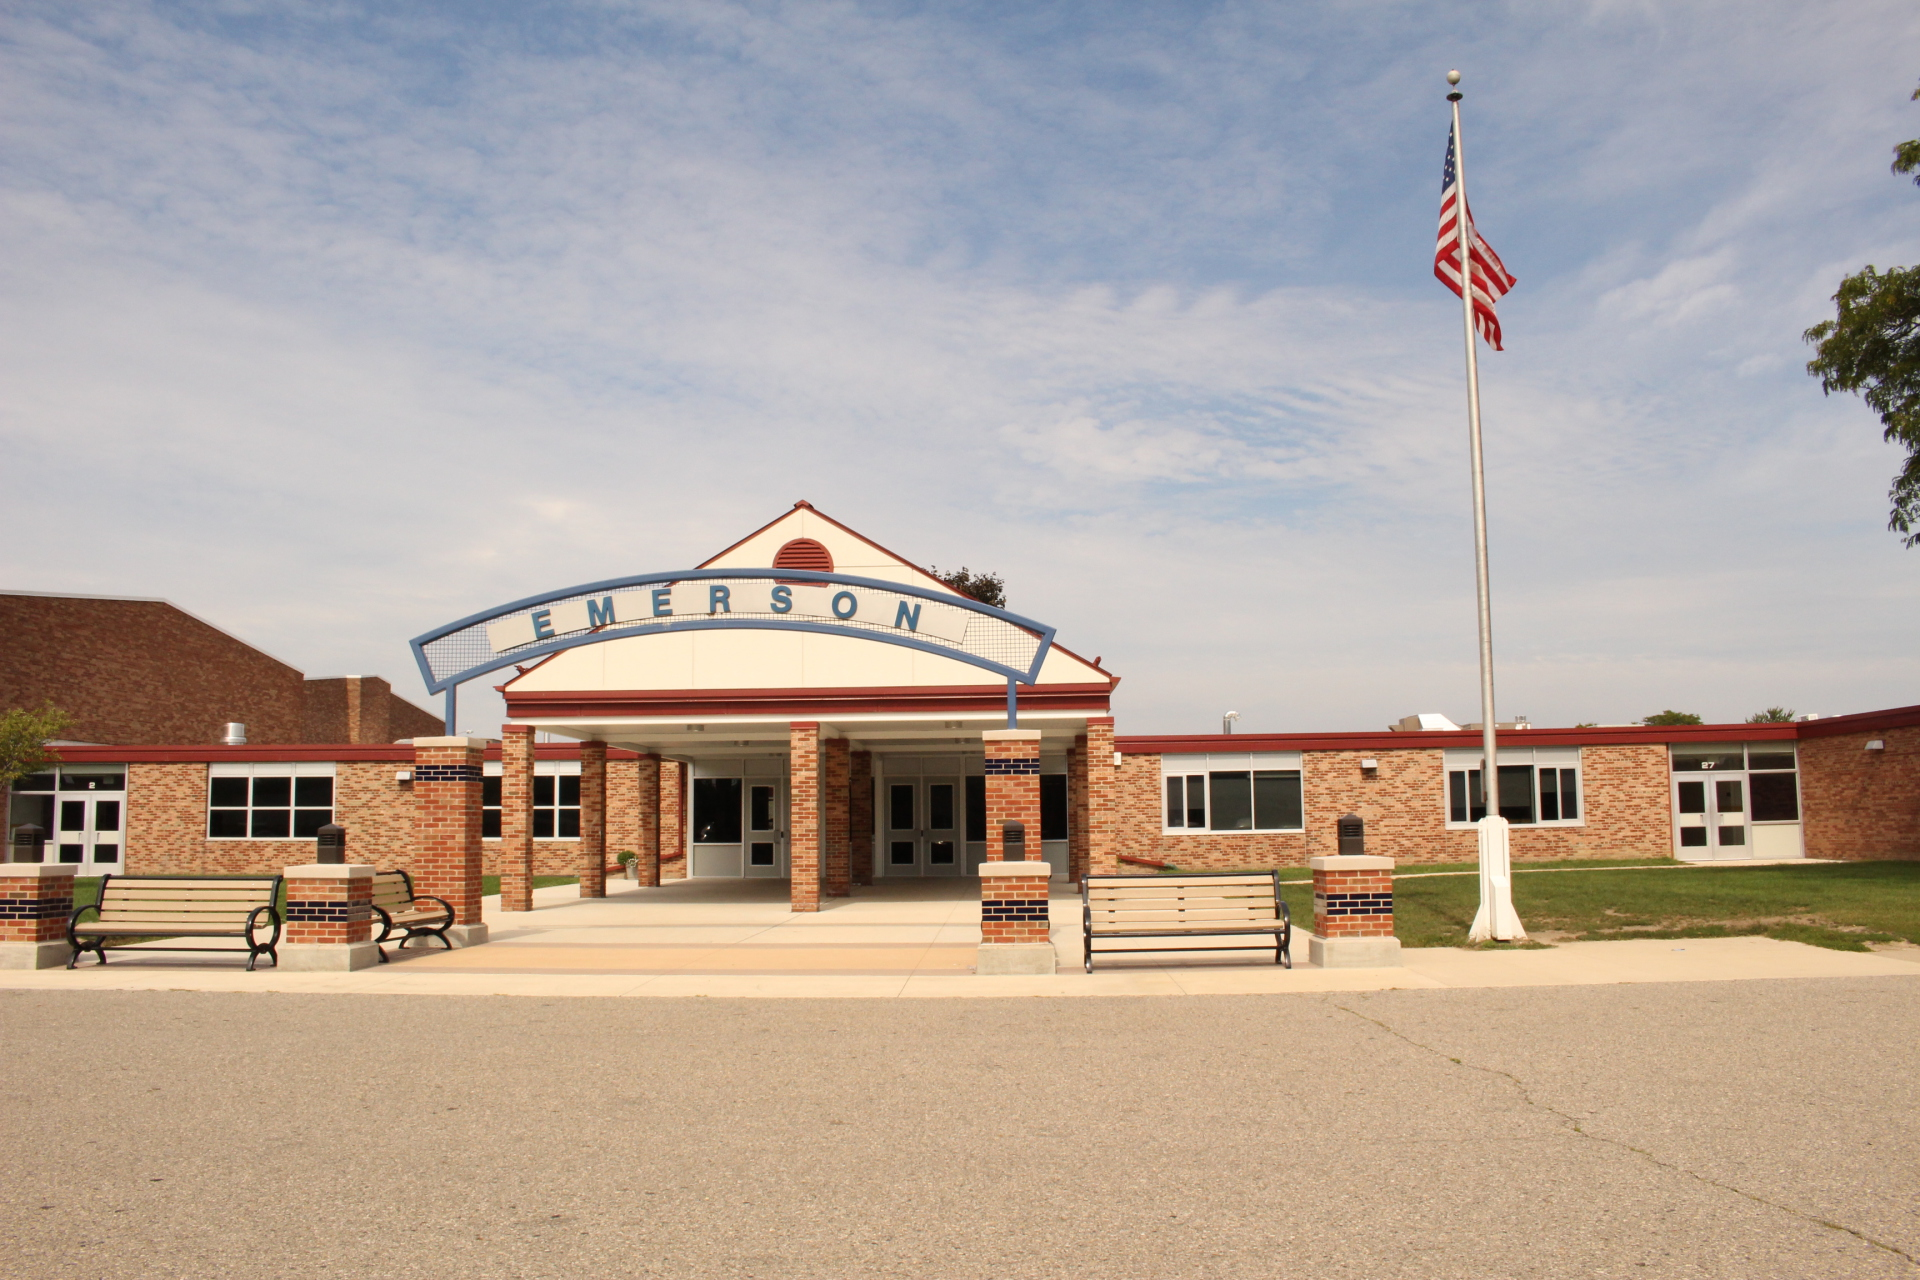 Emerson Middle School